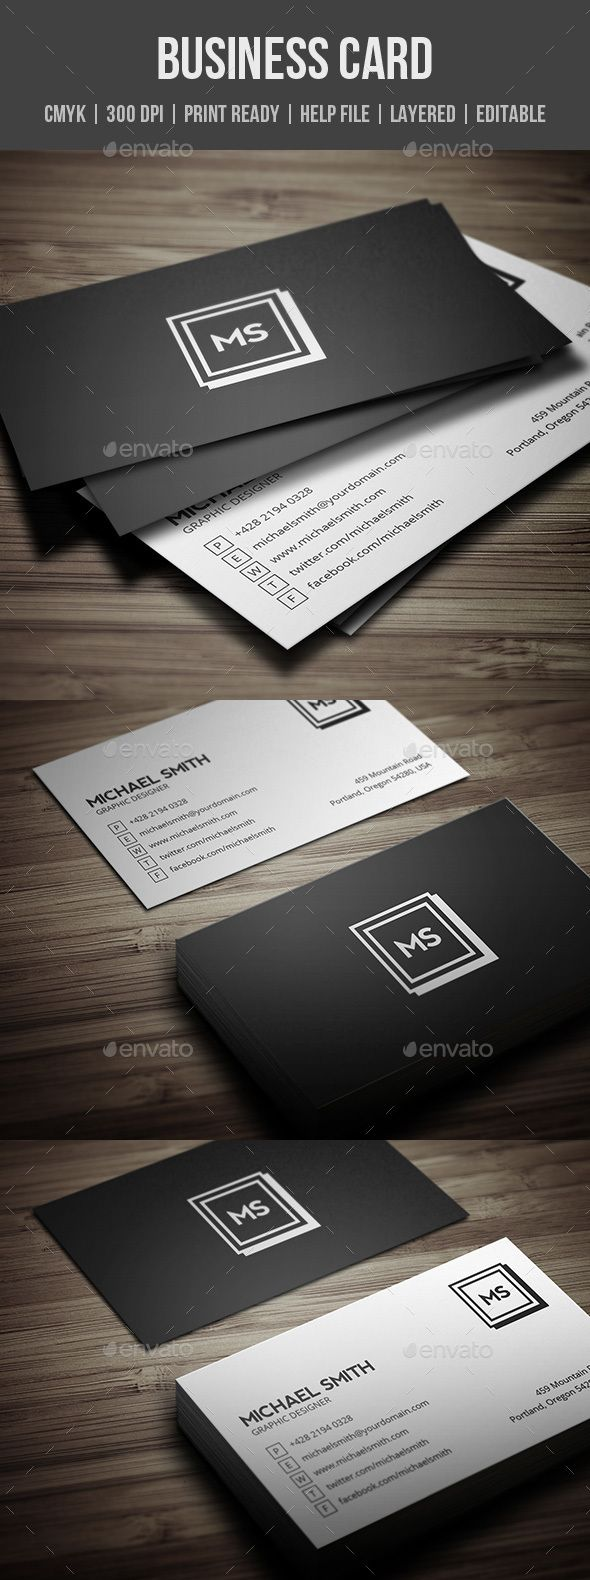 21 best business cards images on pinterest business card design creative business card by be cool featurescmyk colors 300 dpi layered psd files customizable and editable inches with bleeds trim mark print re cheaphphosting Gallery